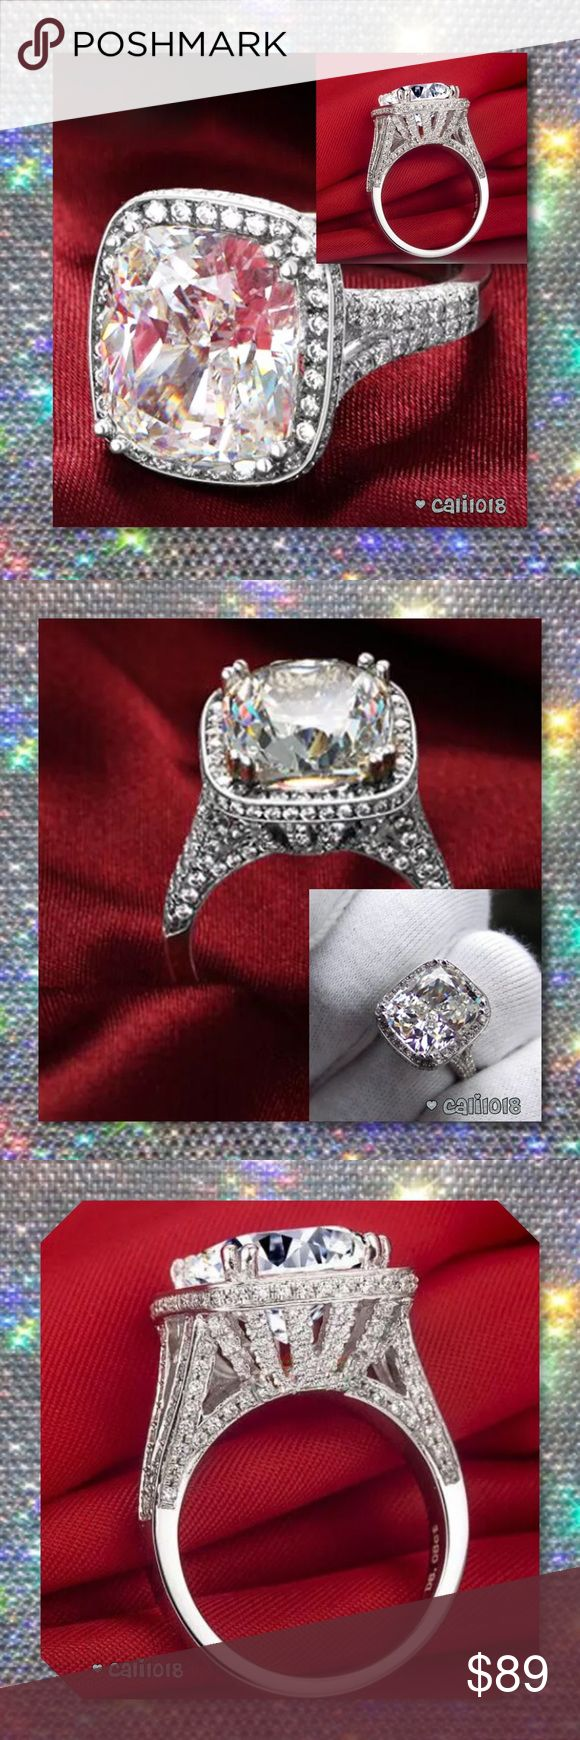 JUST IN🆕 5cts Plus Stunning Split Shank 925 Ring This bold engagement ring features a pave white sapphire encrusted, cushion-shaped halo and a slight split in the band which accentuates the center stone. Very large statement ring.  Stone shape: Radiant Stone weight: Over 5cts Style: Halo split shank Size Avail: 10 Stone Type: White Sapphire Metal: 925 Silver   💠💠PRICE FIRM UNLESS BUNDLED💠💠 ⭐️⭐️LOWBALL AND TRADE OFFERS WILL BE IGNORED (SORRY)⭐️⭐️ Glam Squad 2 You Jewelry Rings